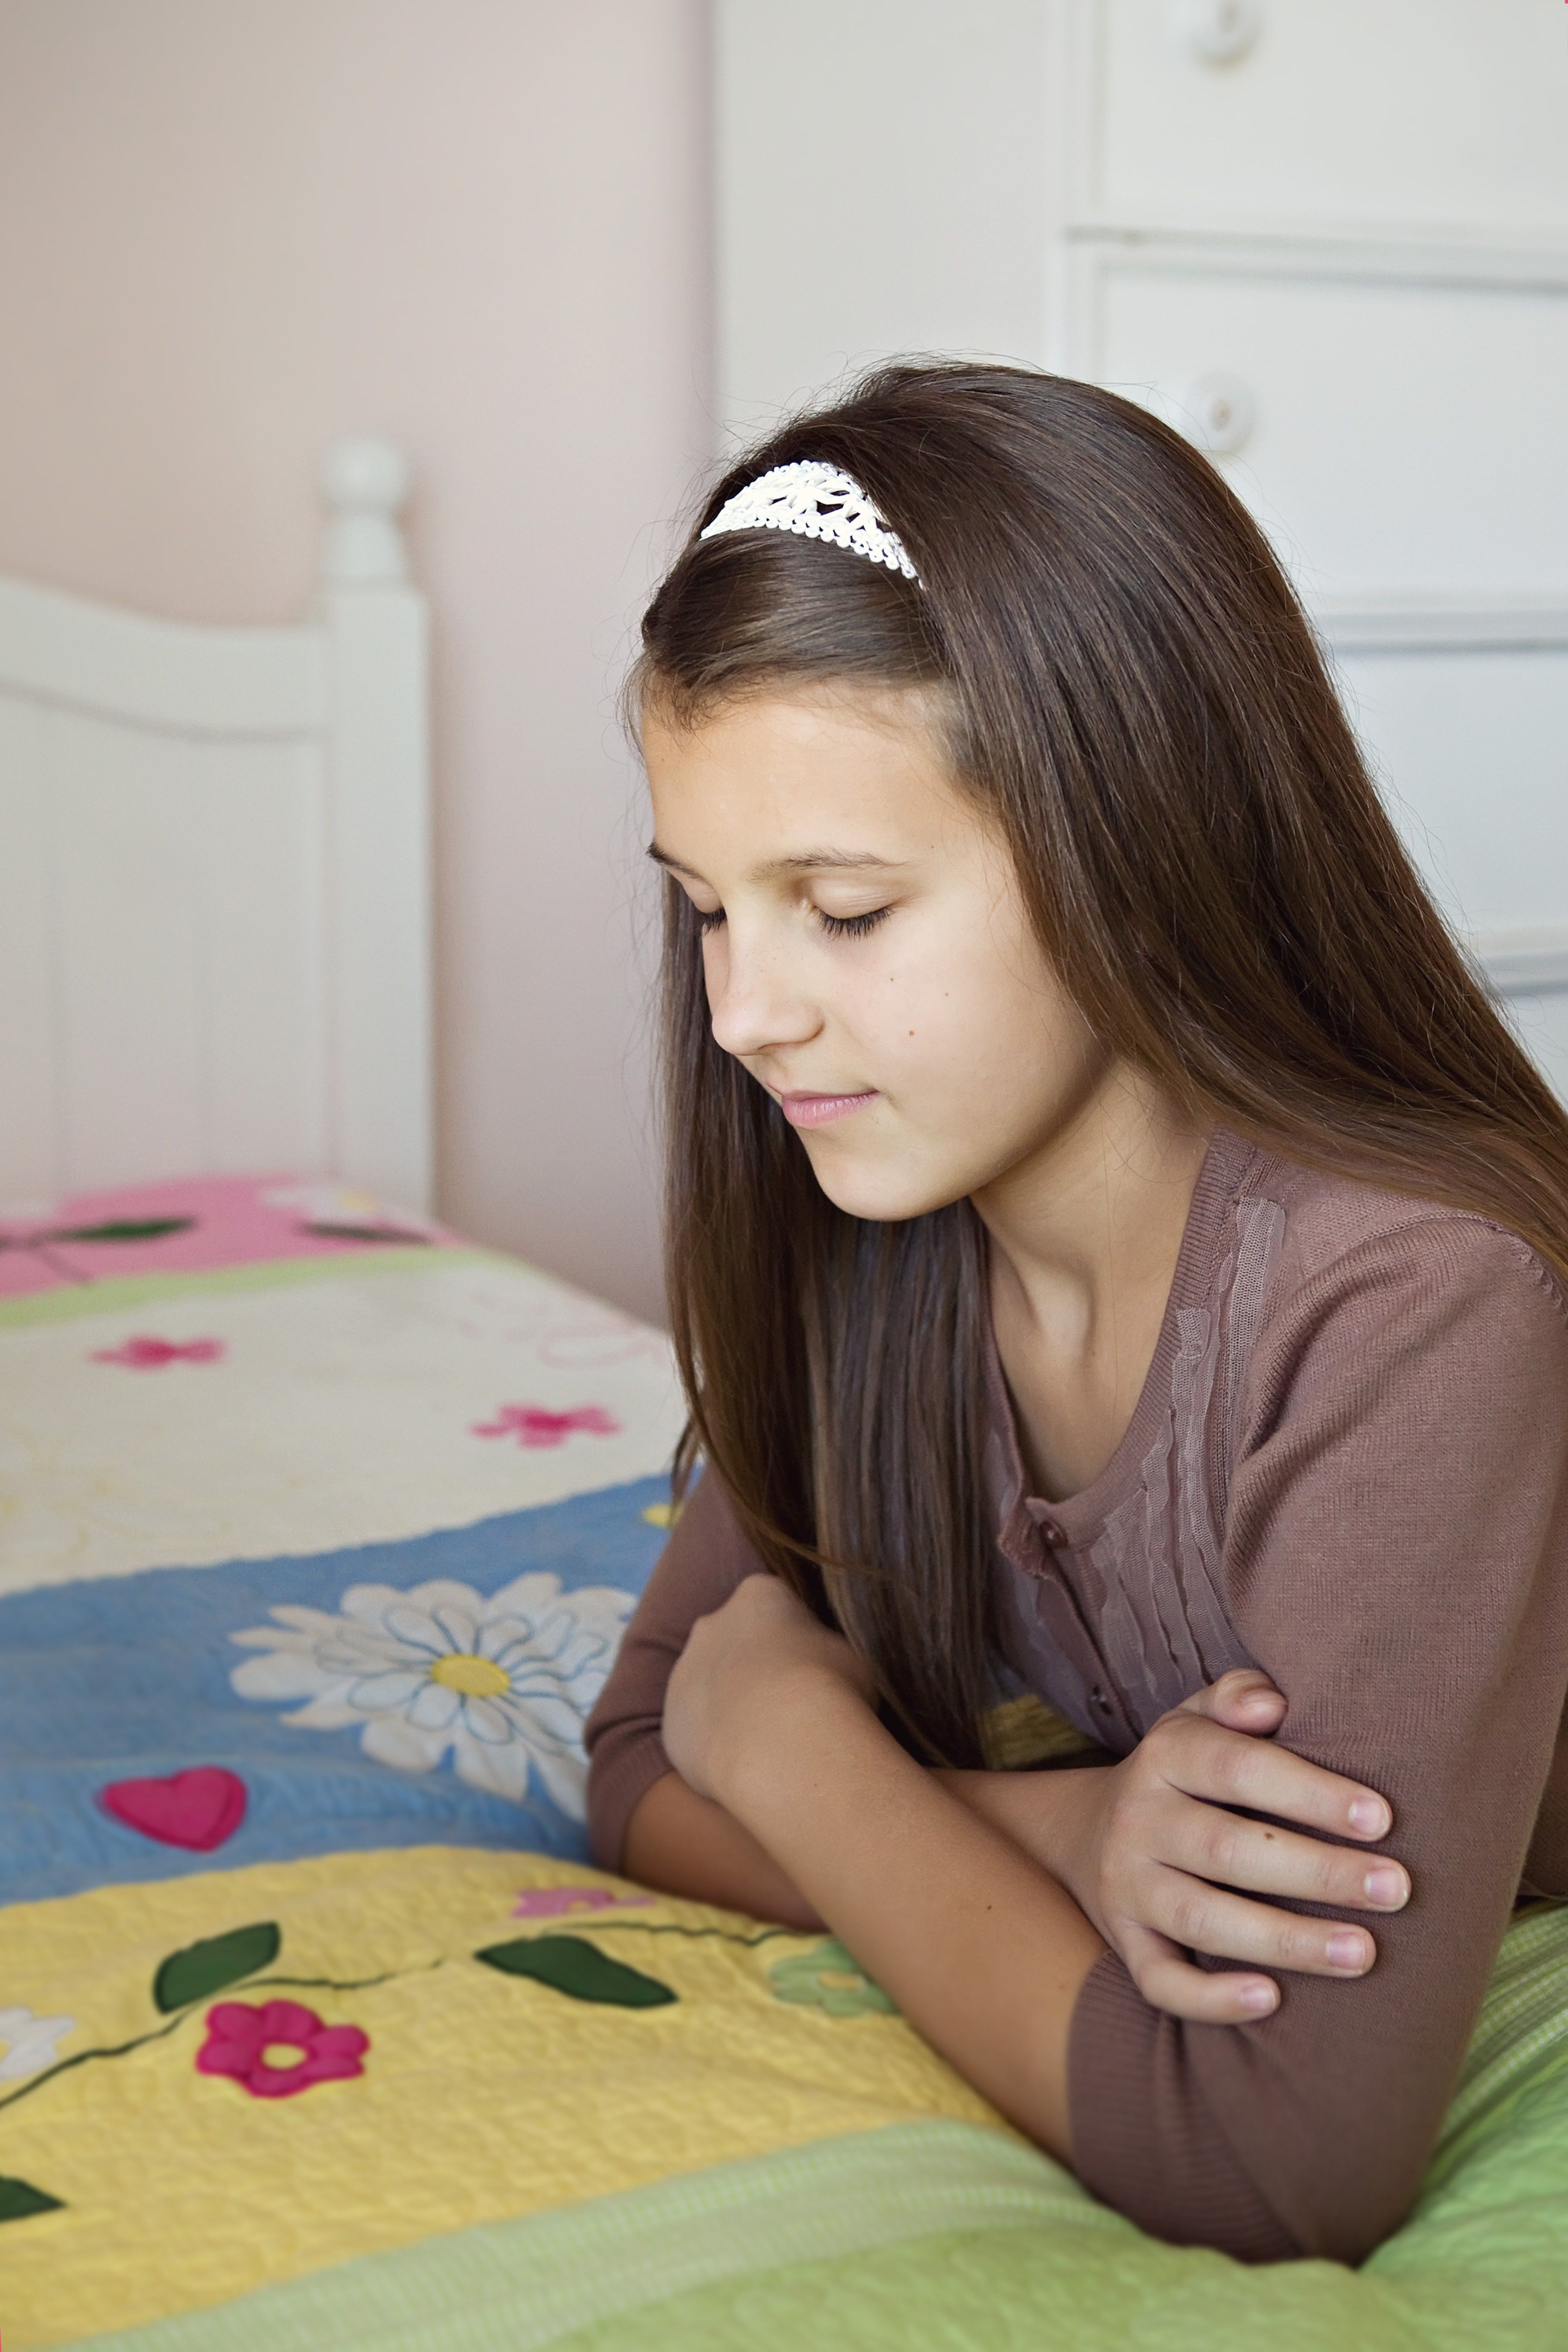 A young girl kneels in her bedroom and prays.